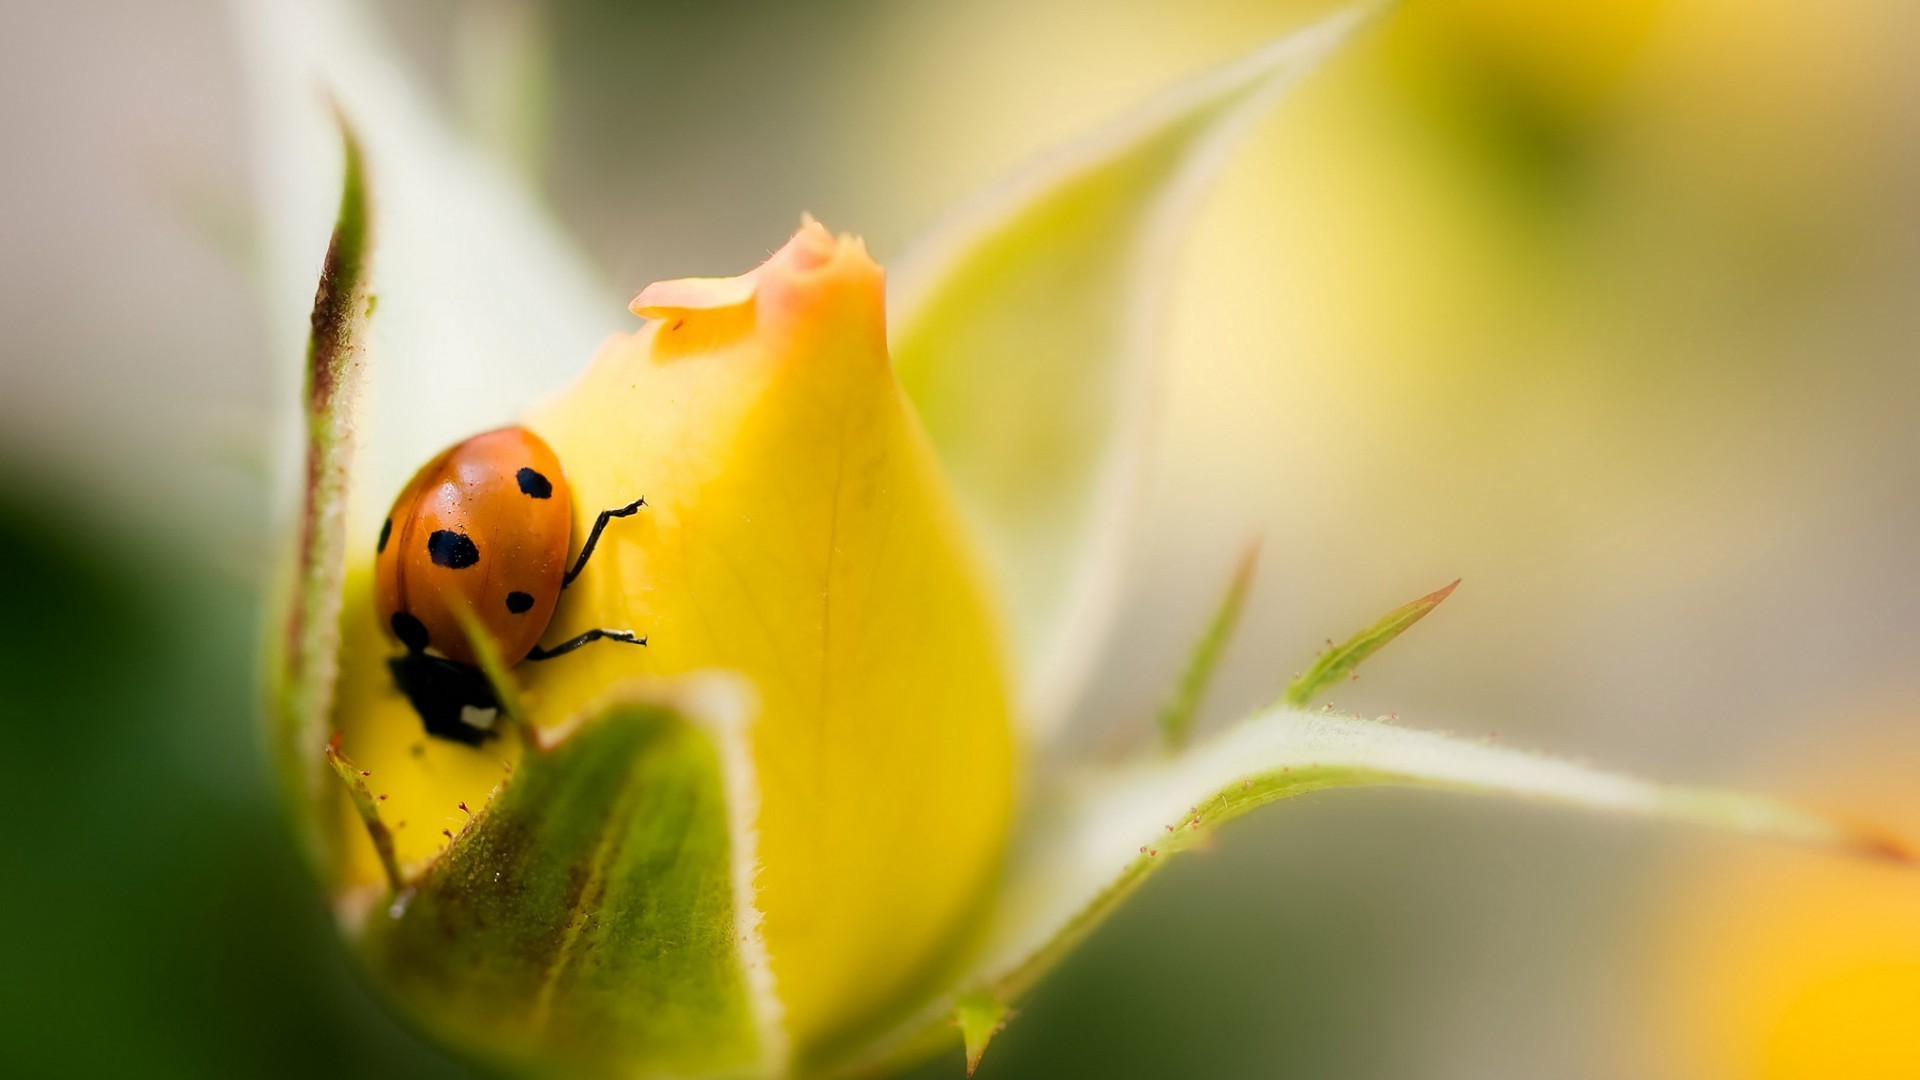 Rain Fall Hd Wallpaper Download Rose Macro Flowers Ladybugs Insect Yellow Flowers